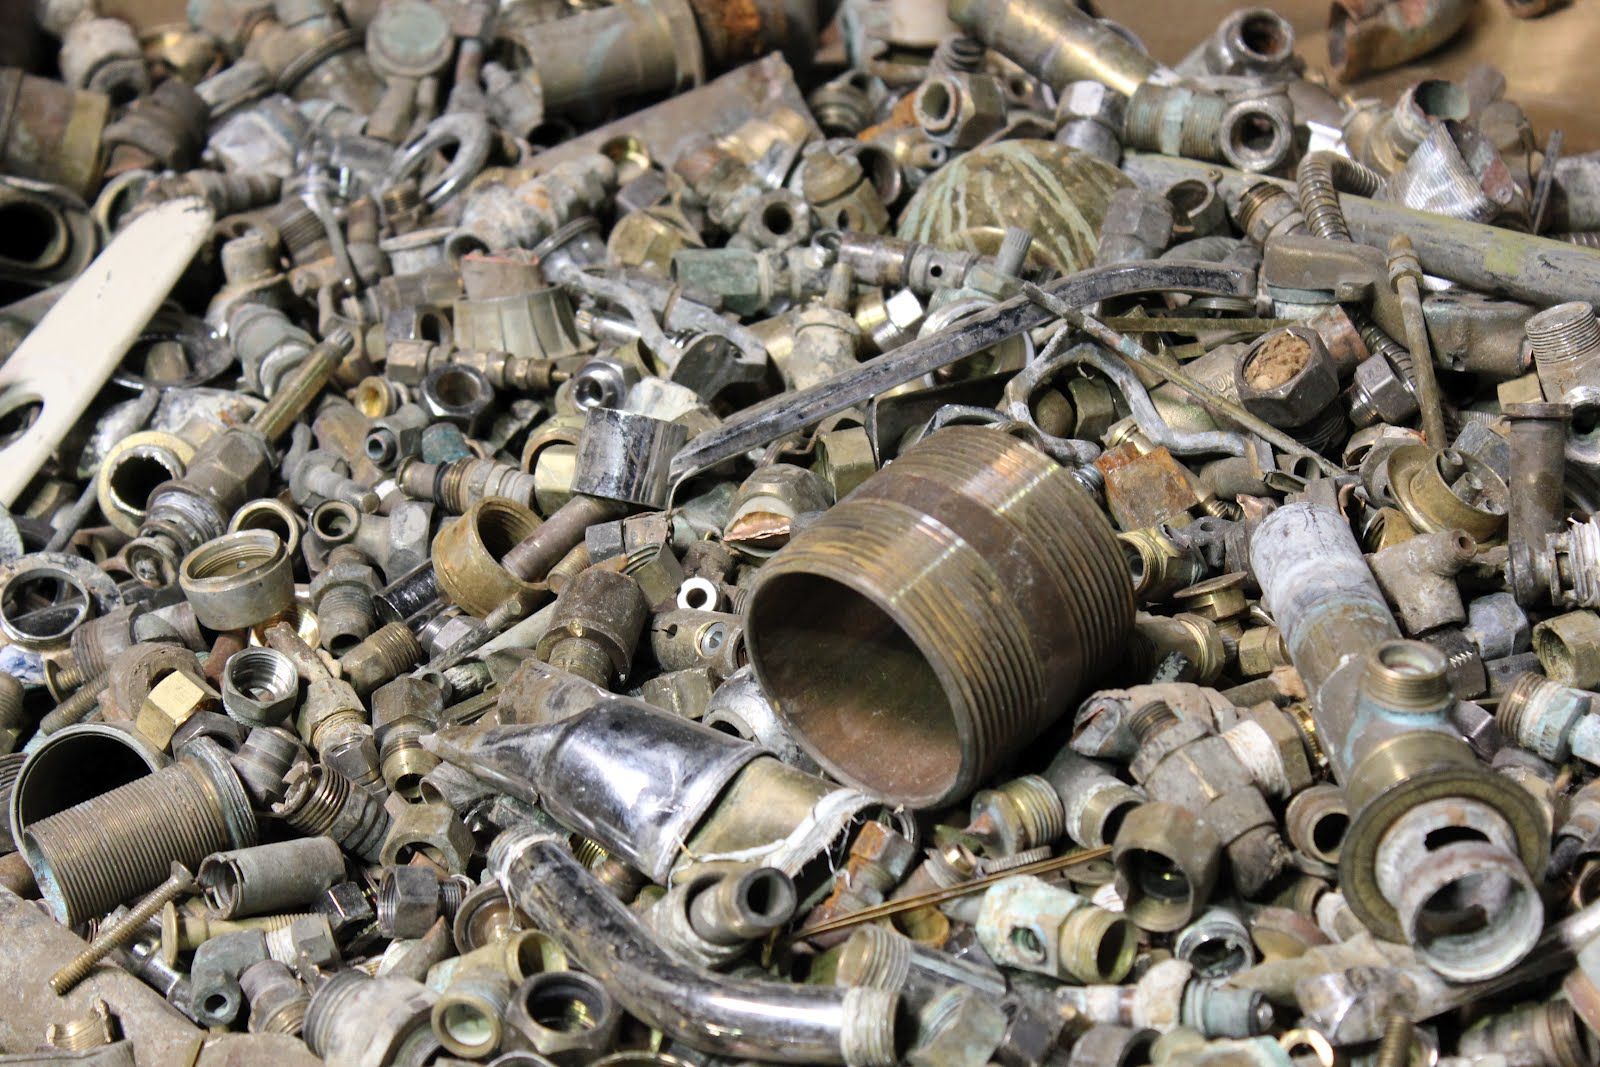 Scrap Metal Scottsdale AZ | We Buy Scrap